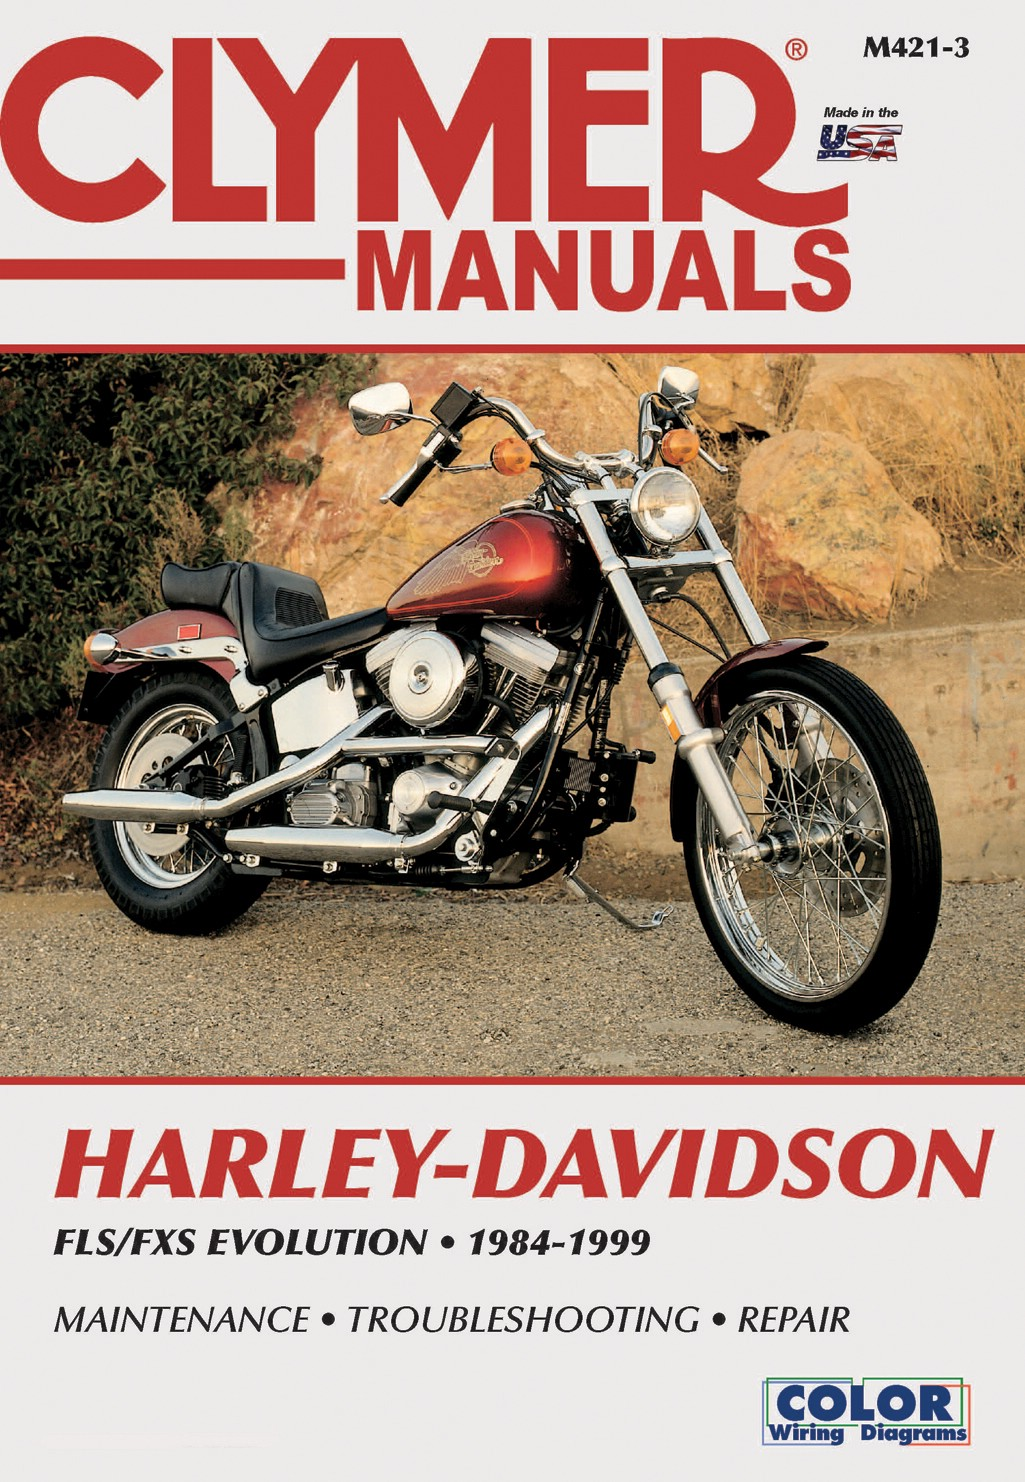 Harley Davidson FLSTF 1340 Fat Boy 1990-1999 Manuals - Clymer (Each)